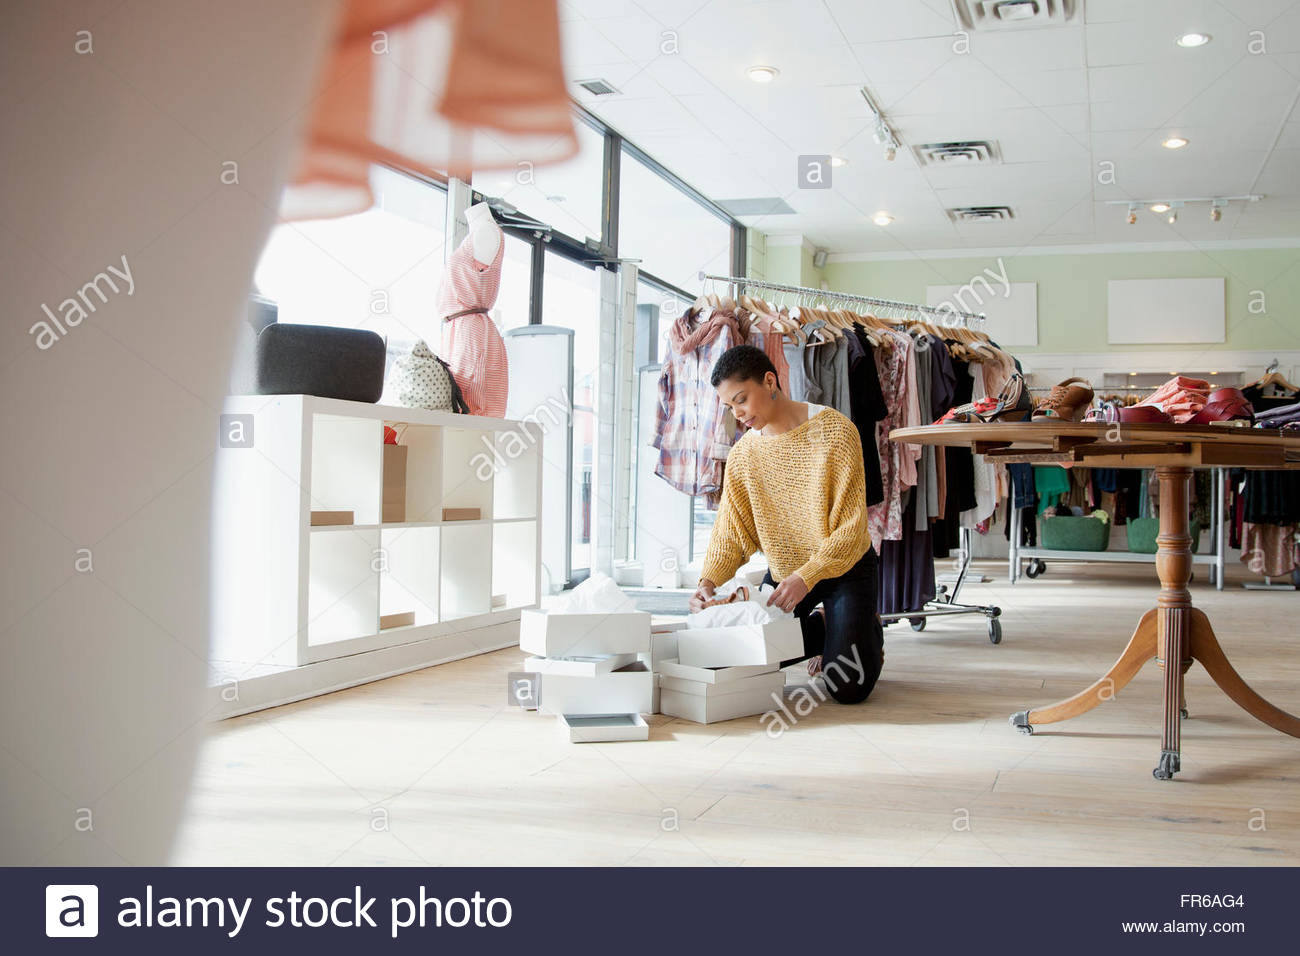 store owner organizing merchandise - Stock Image